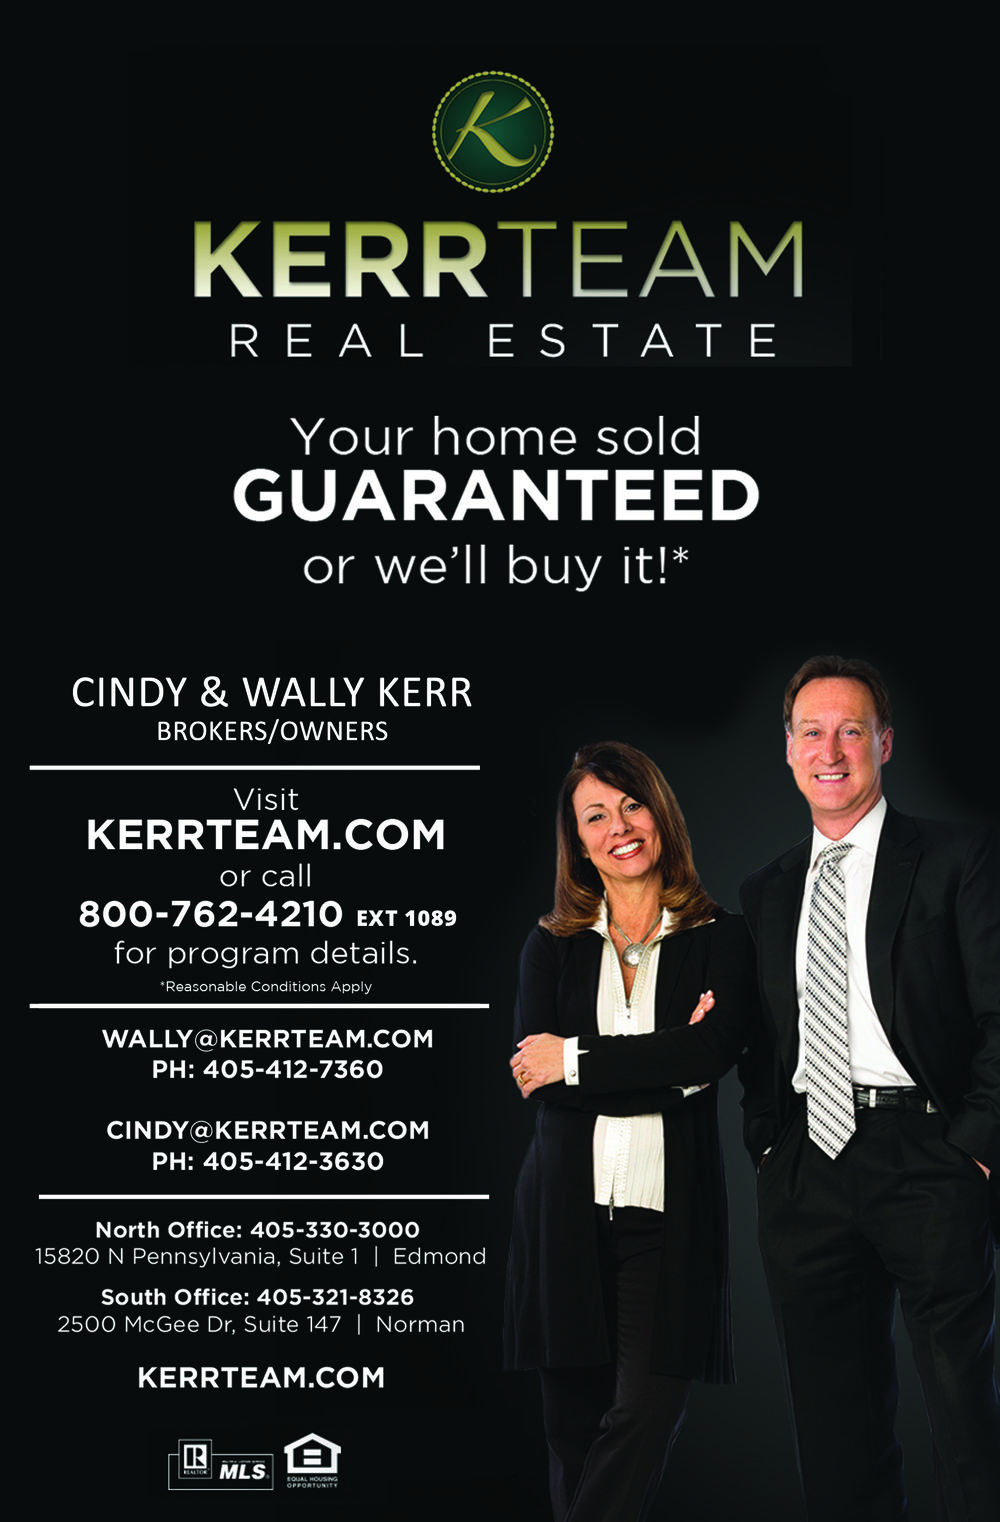 Kerr Team Real Estate  - Cindy Kerr_Full_Oklahoma City.jpg